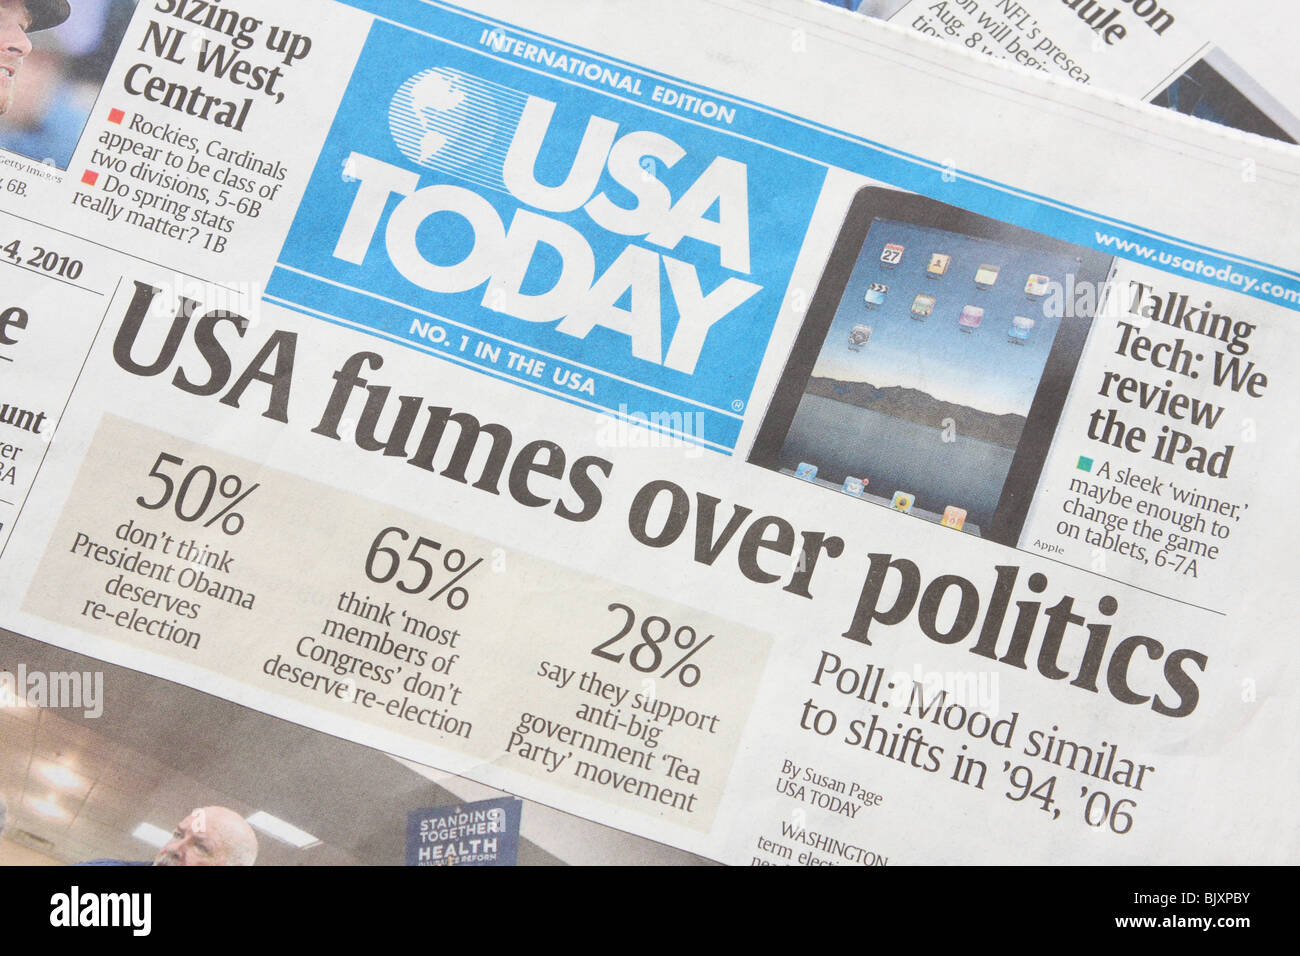 Political headlines in the International Edition of the USA Today newspaper. - Stock Image